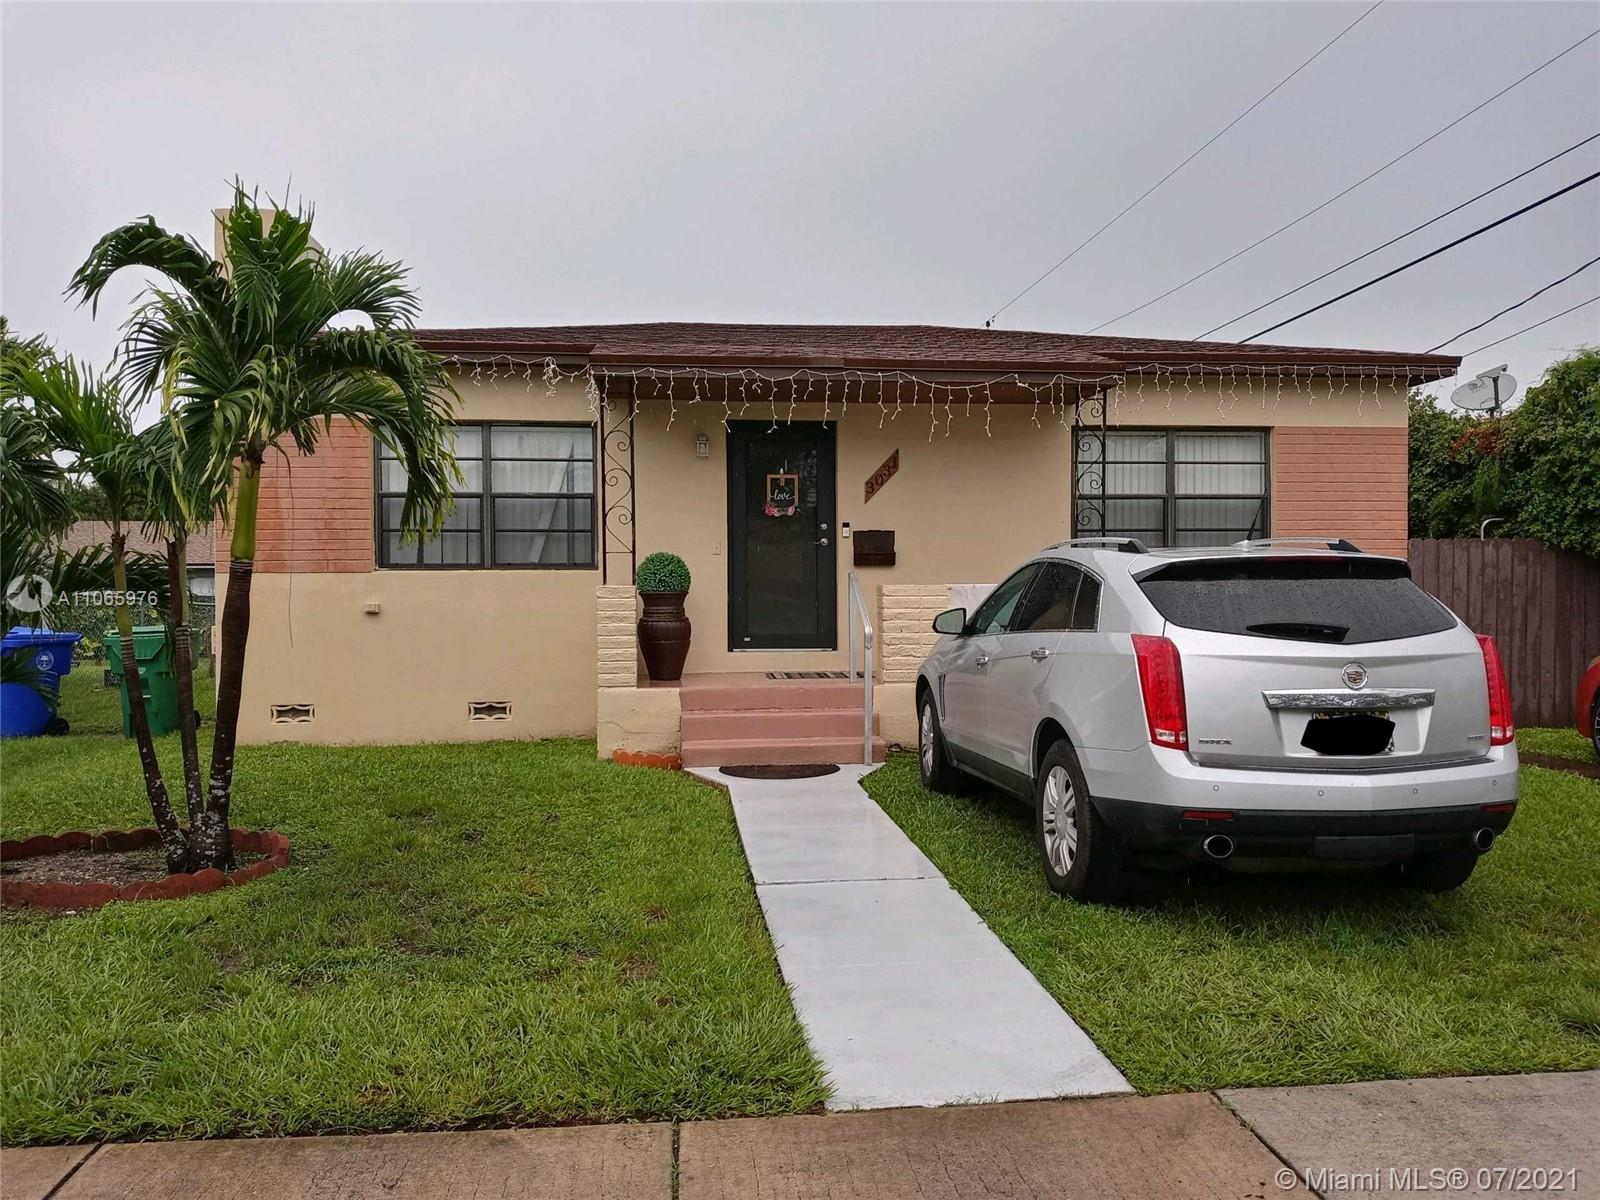 Great starter home for family that rather not deal with an association. Cozy 2/1 with a nice size backyard to have family BBQ or fit a boat. Extremely convenient for any boat owner, only 5 mins away from the marina. Located in a quiet neighborhood but still remarkably close to all the entertainment like Downtown, Brickell, Coconut Grove, and the Beach. Can also be an investors dream! Two properties right next to each other both in T3 zone with many 2 story duplexes that are being built in the neighborhood the other property address is 3041 SW 27 AVE. Property is currently occupied by tenants that are month to month.